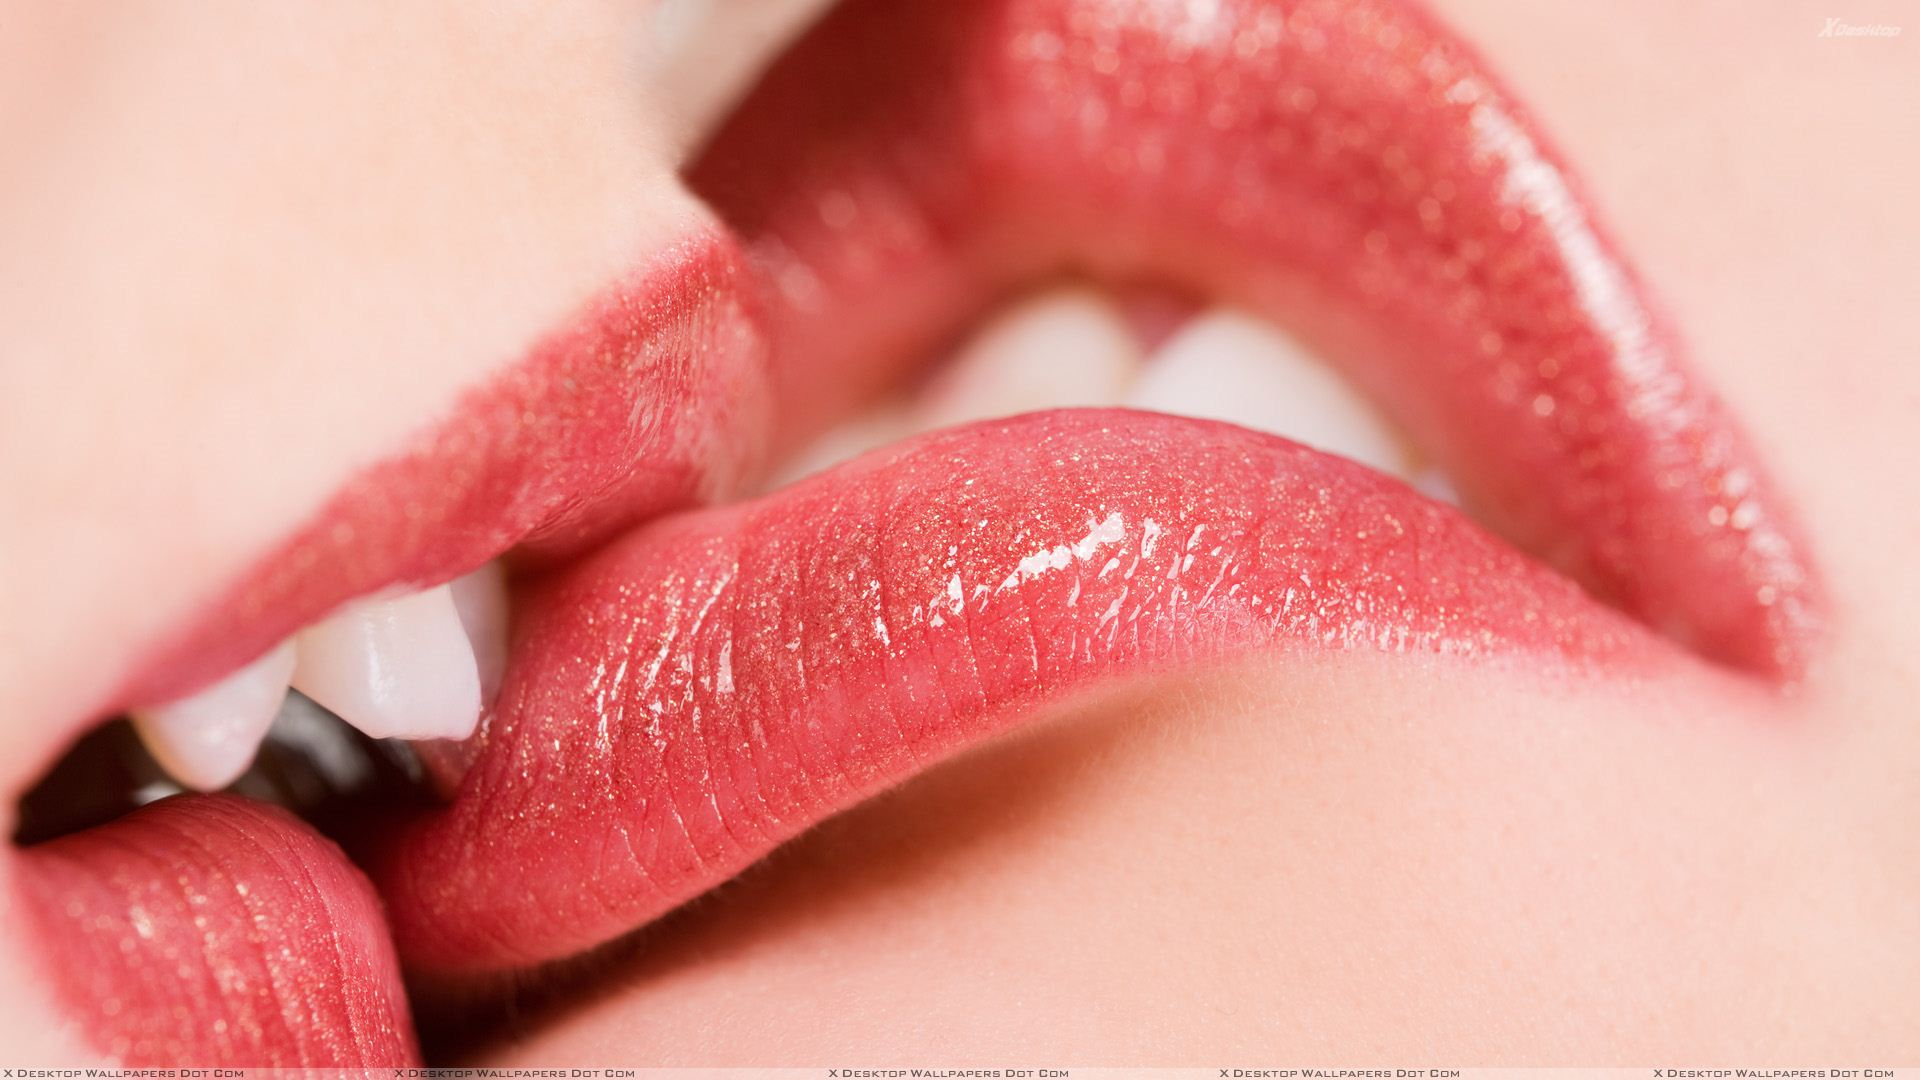 Kissing Glossy Red Lips Closeup   Kissing Lips To Lips 439891 1920x1080